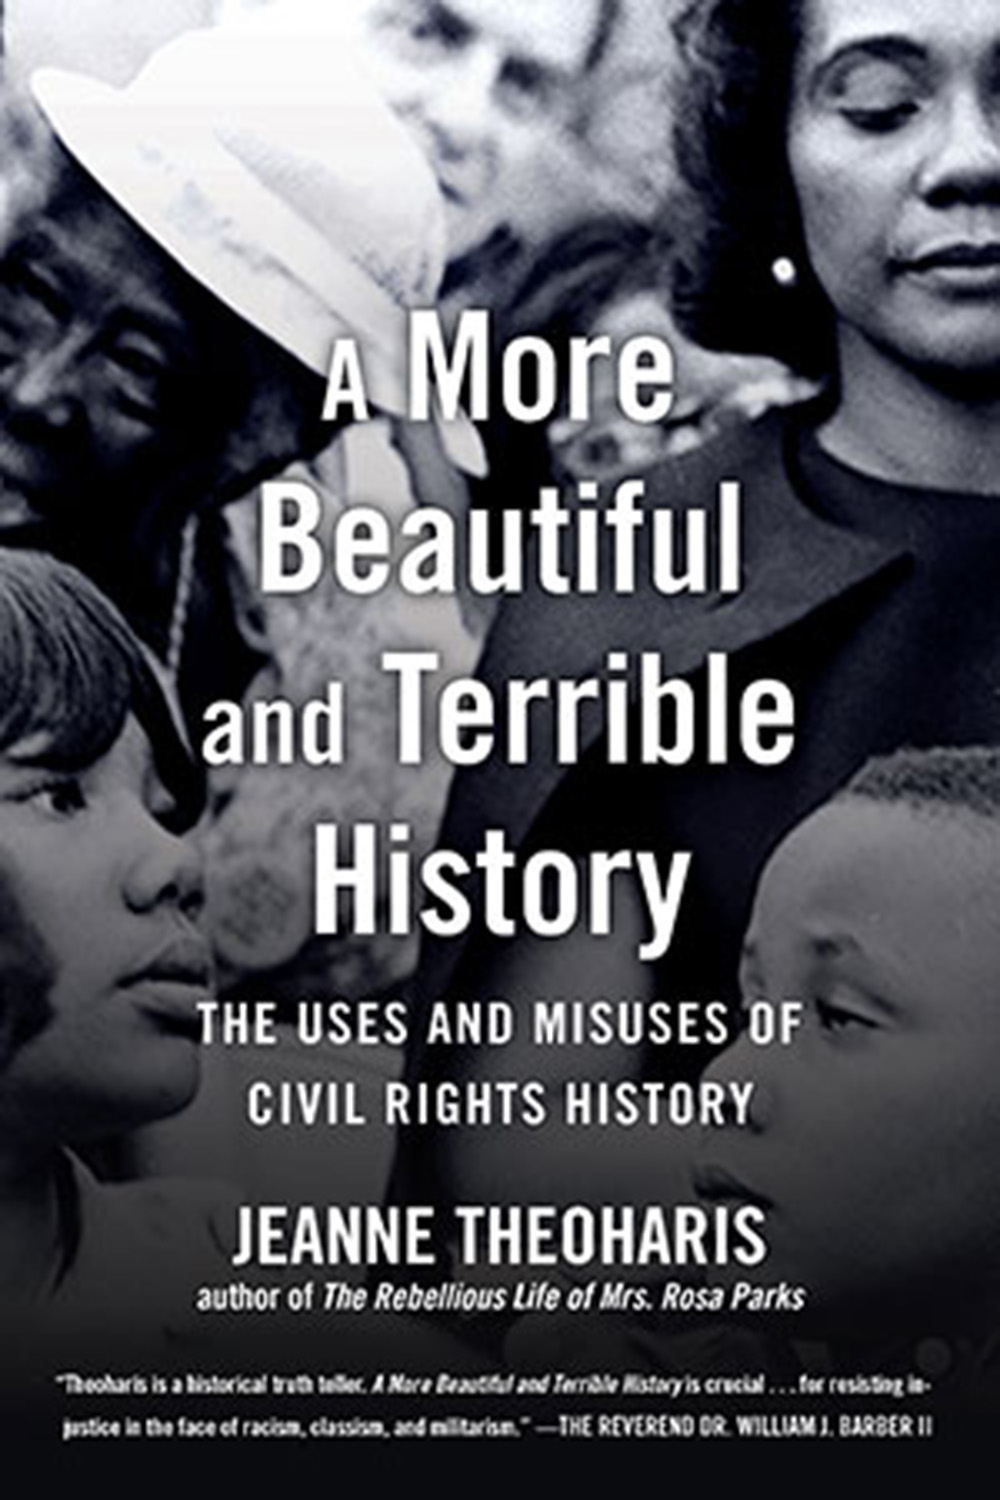 A More Beautiful and Terrible History: The Uses and Misuses of Civil Rights History, by Jeanne Theoharis. Beacon Press.